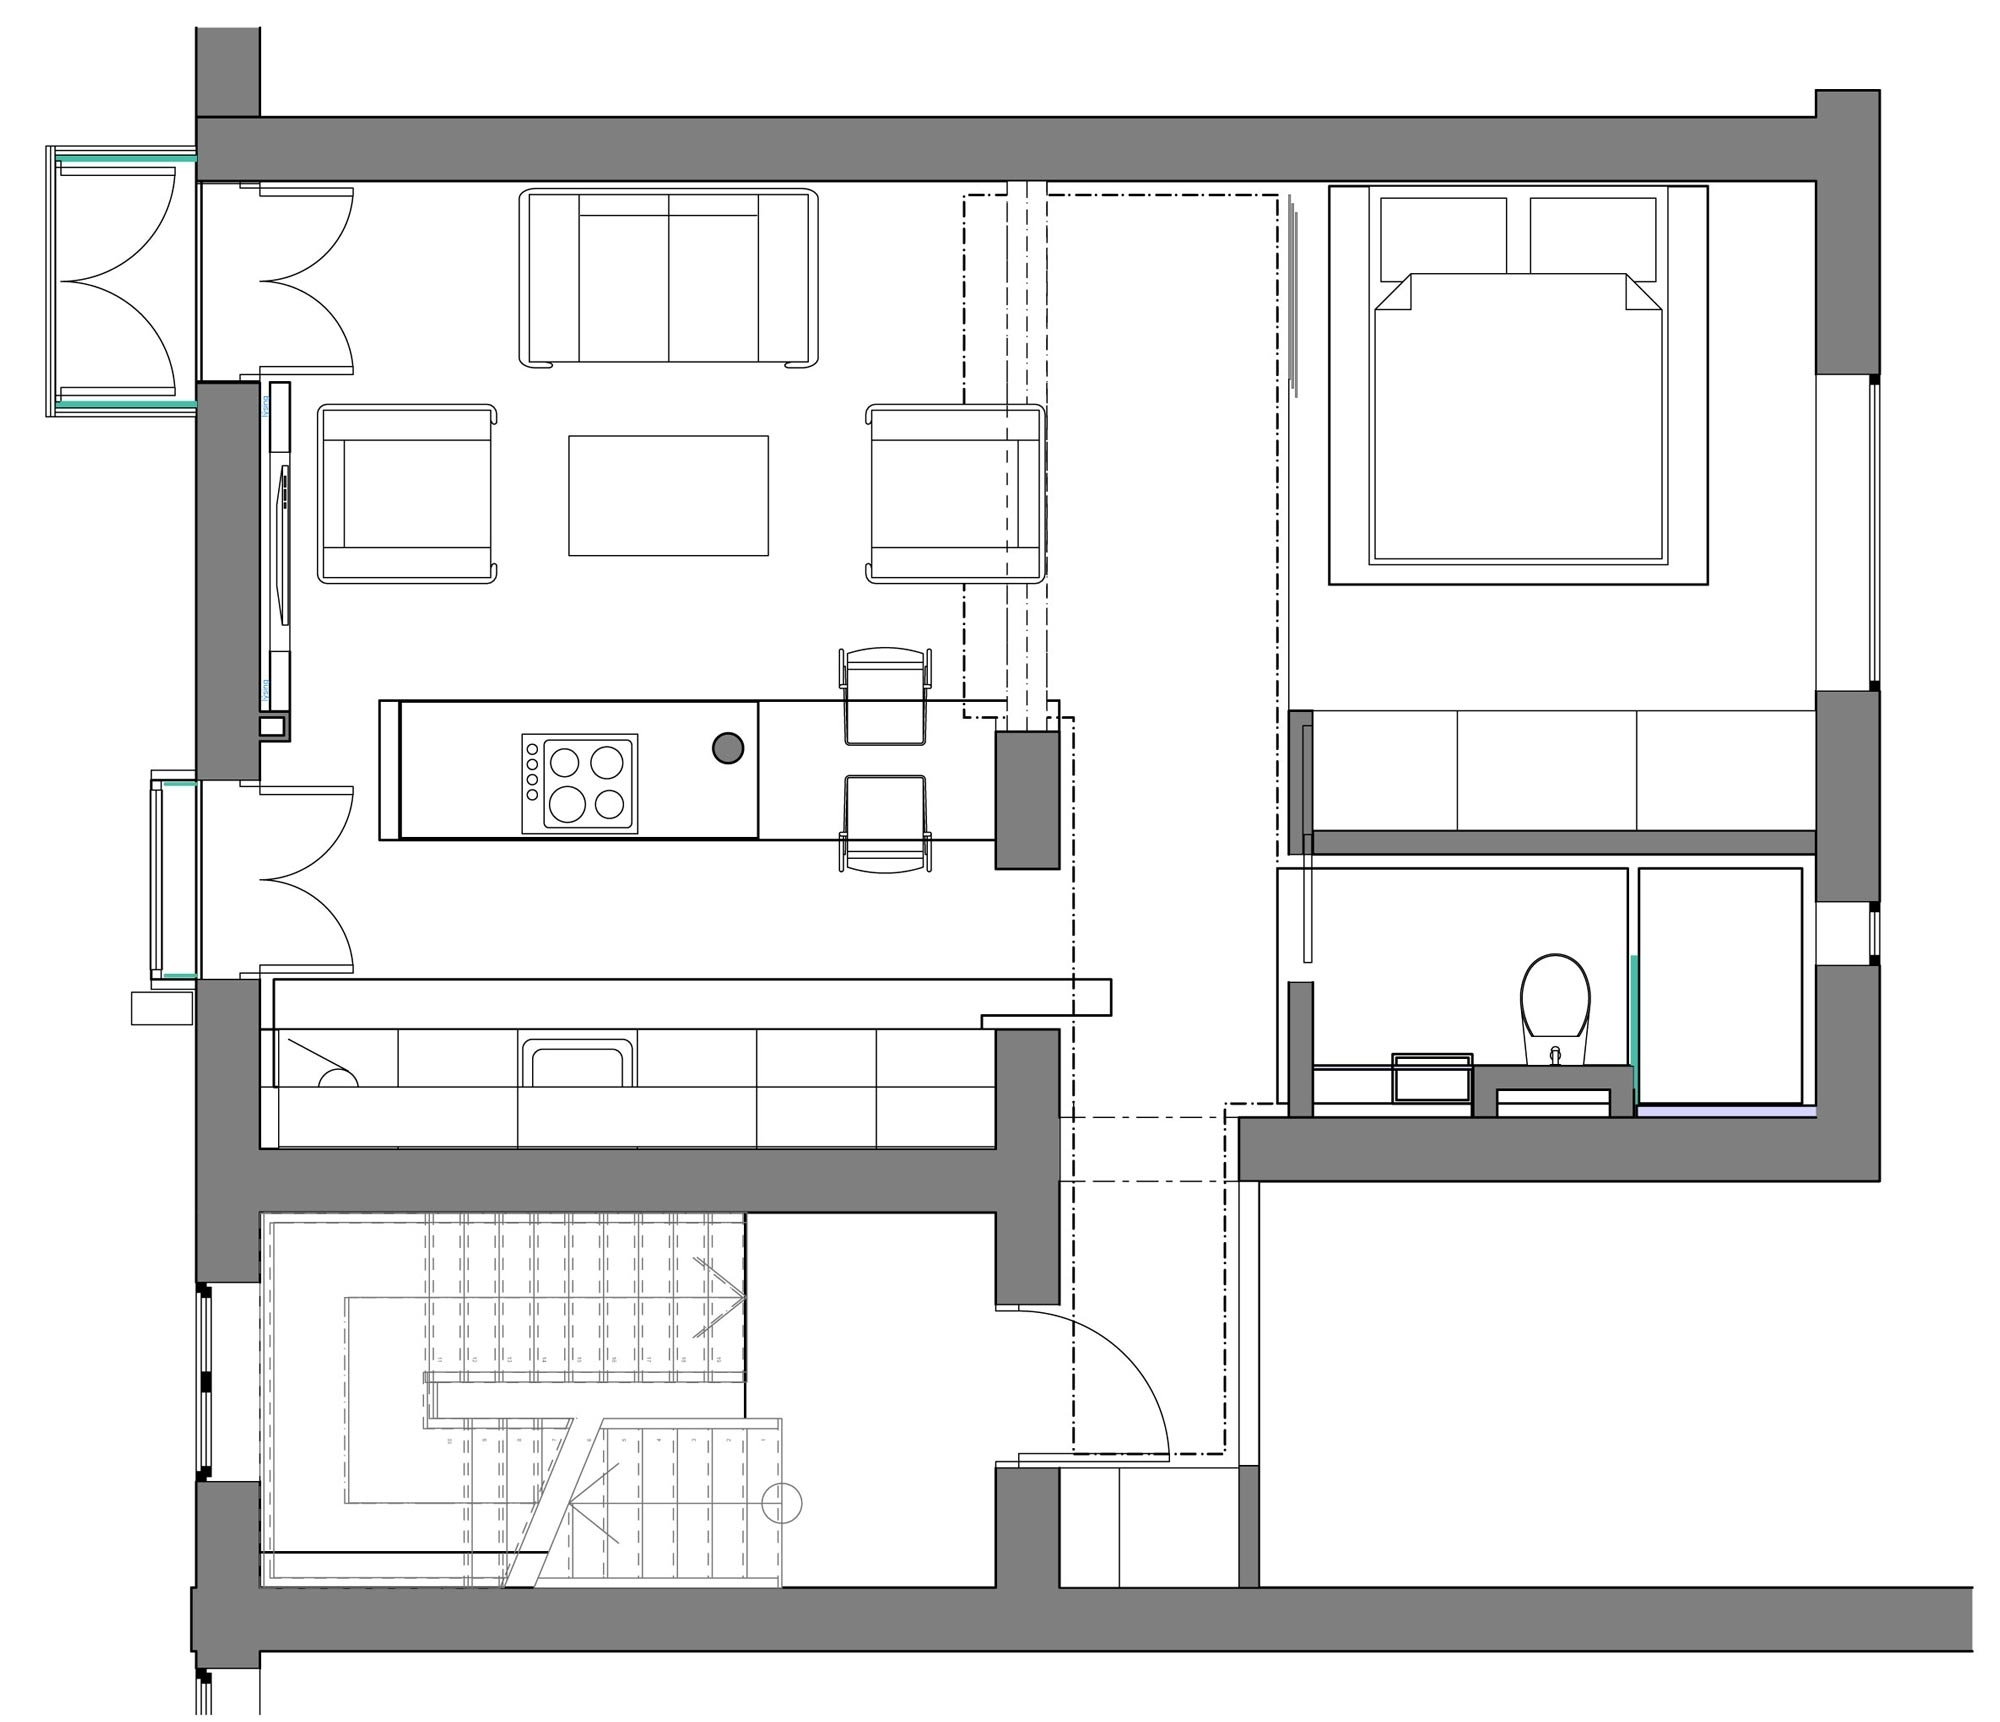 Housing Floor Plans Modern for Best Layout For Lakeview Gardens Apartments Design Ideas